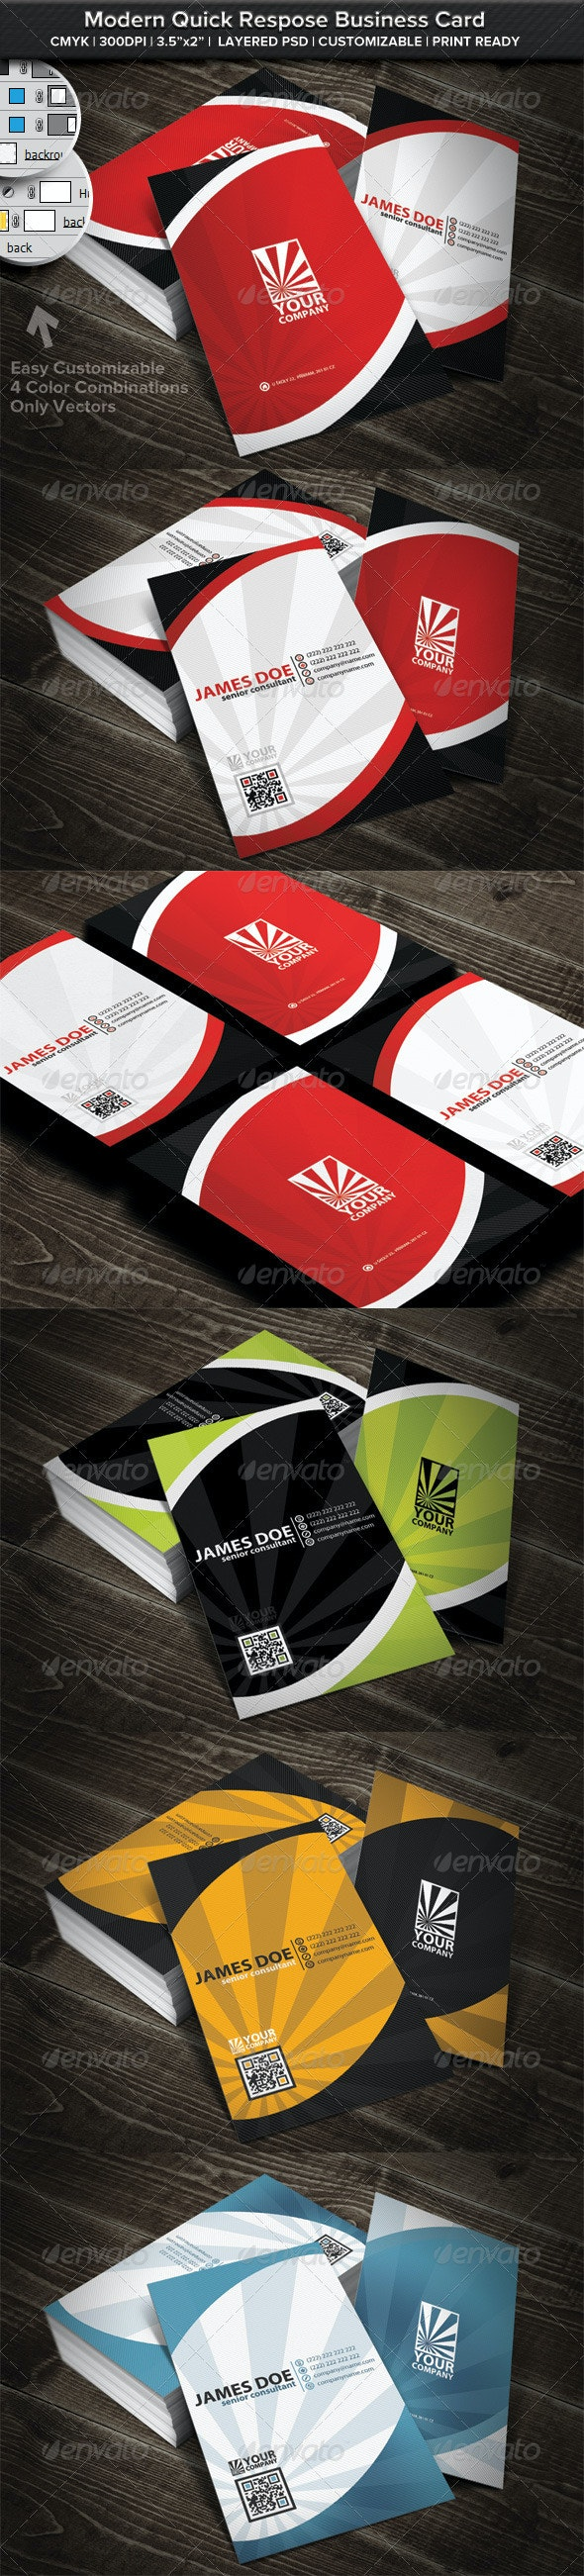 Modern Rounded Quick Respose Business Card - Business Cards Print Templates